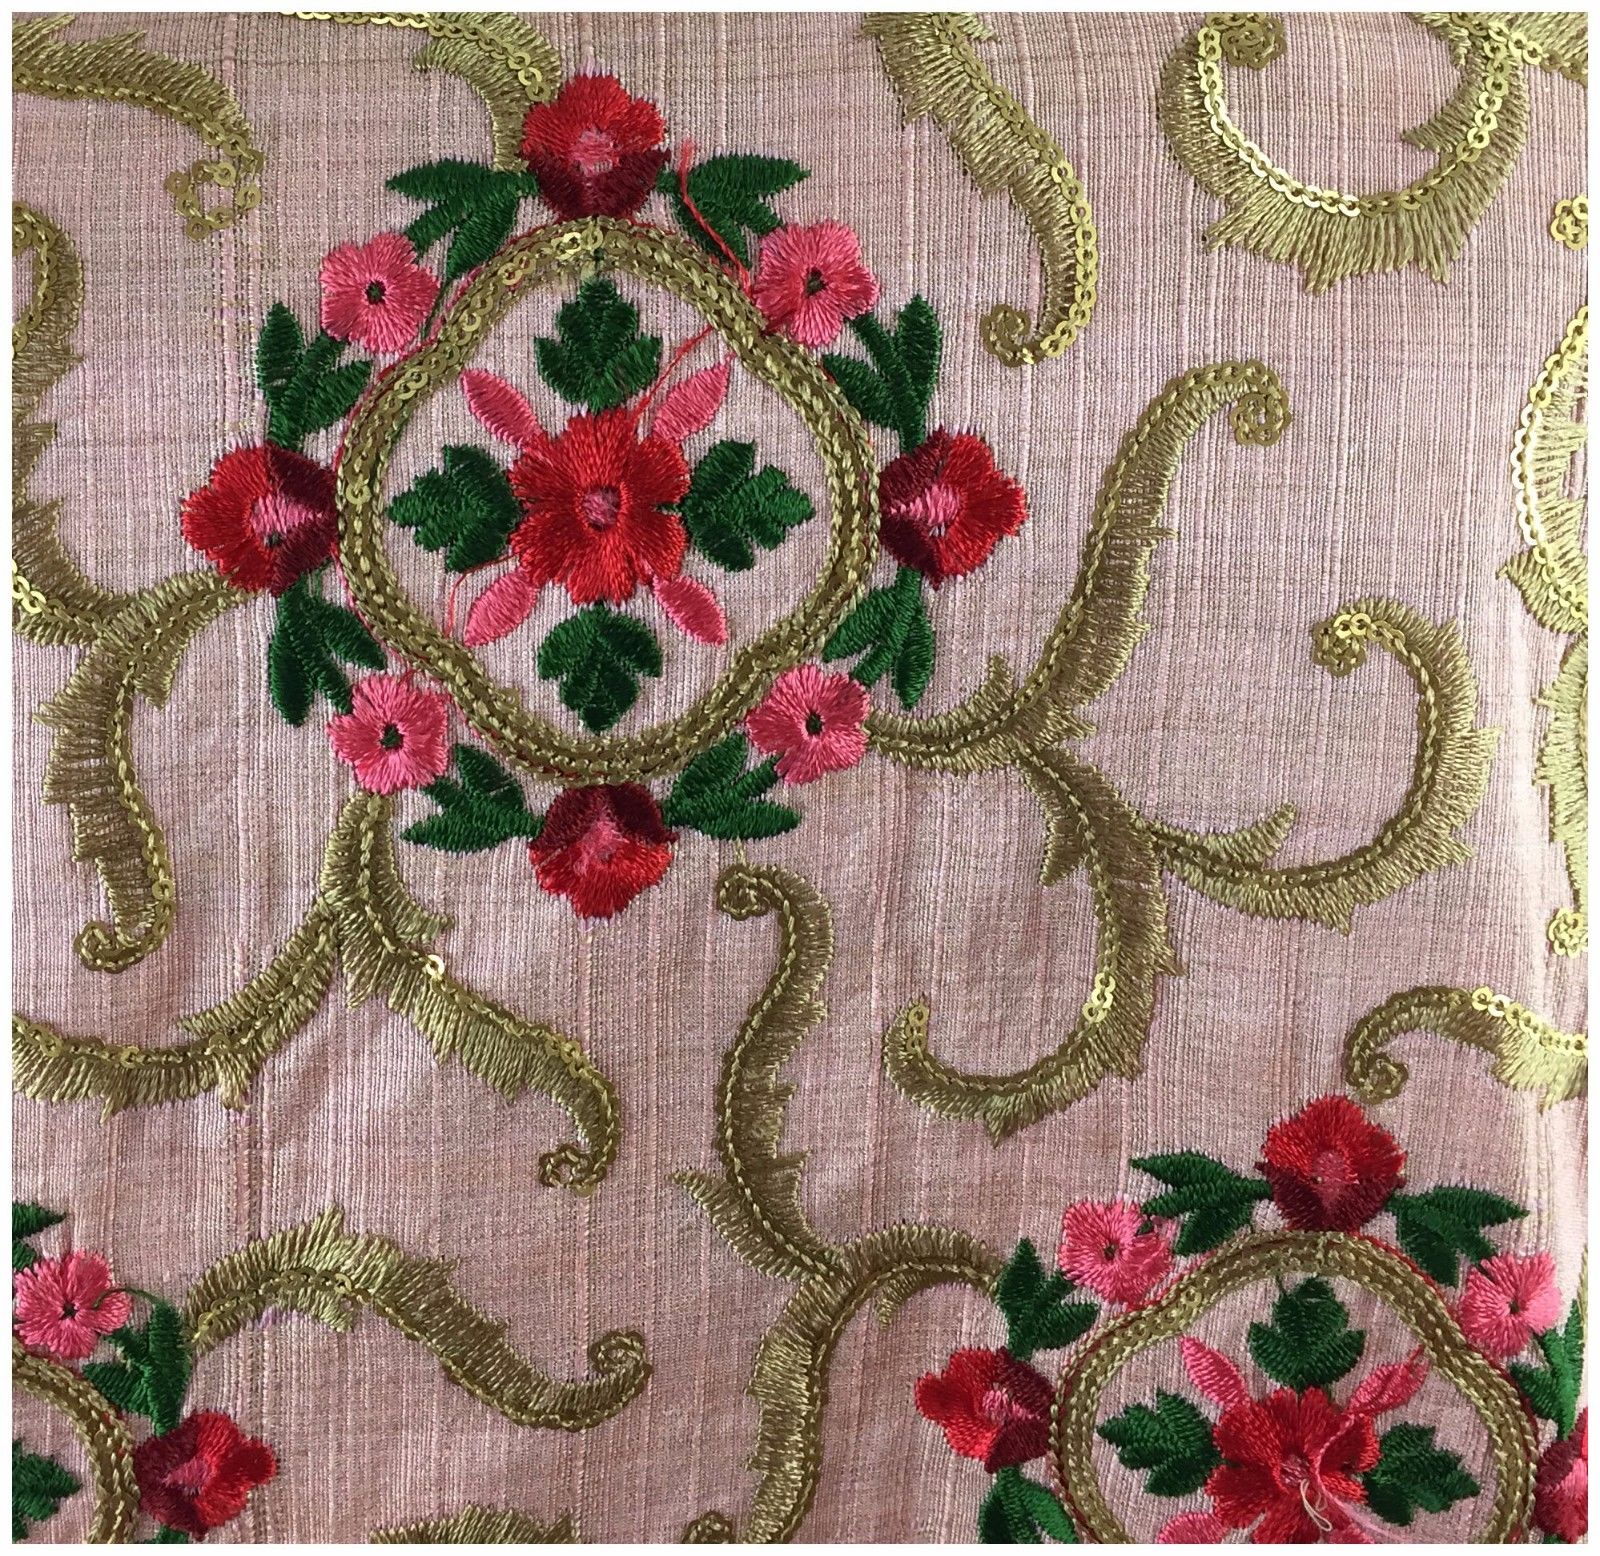 buy material online buy blouse fabric online india Embroidered, Sequins Cotton Mix / Slub Pink, Gold, Red, Pink 48 inches Wide 9020